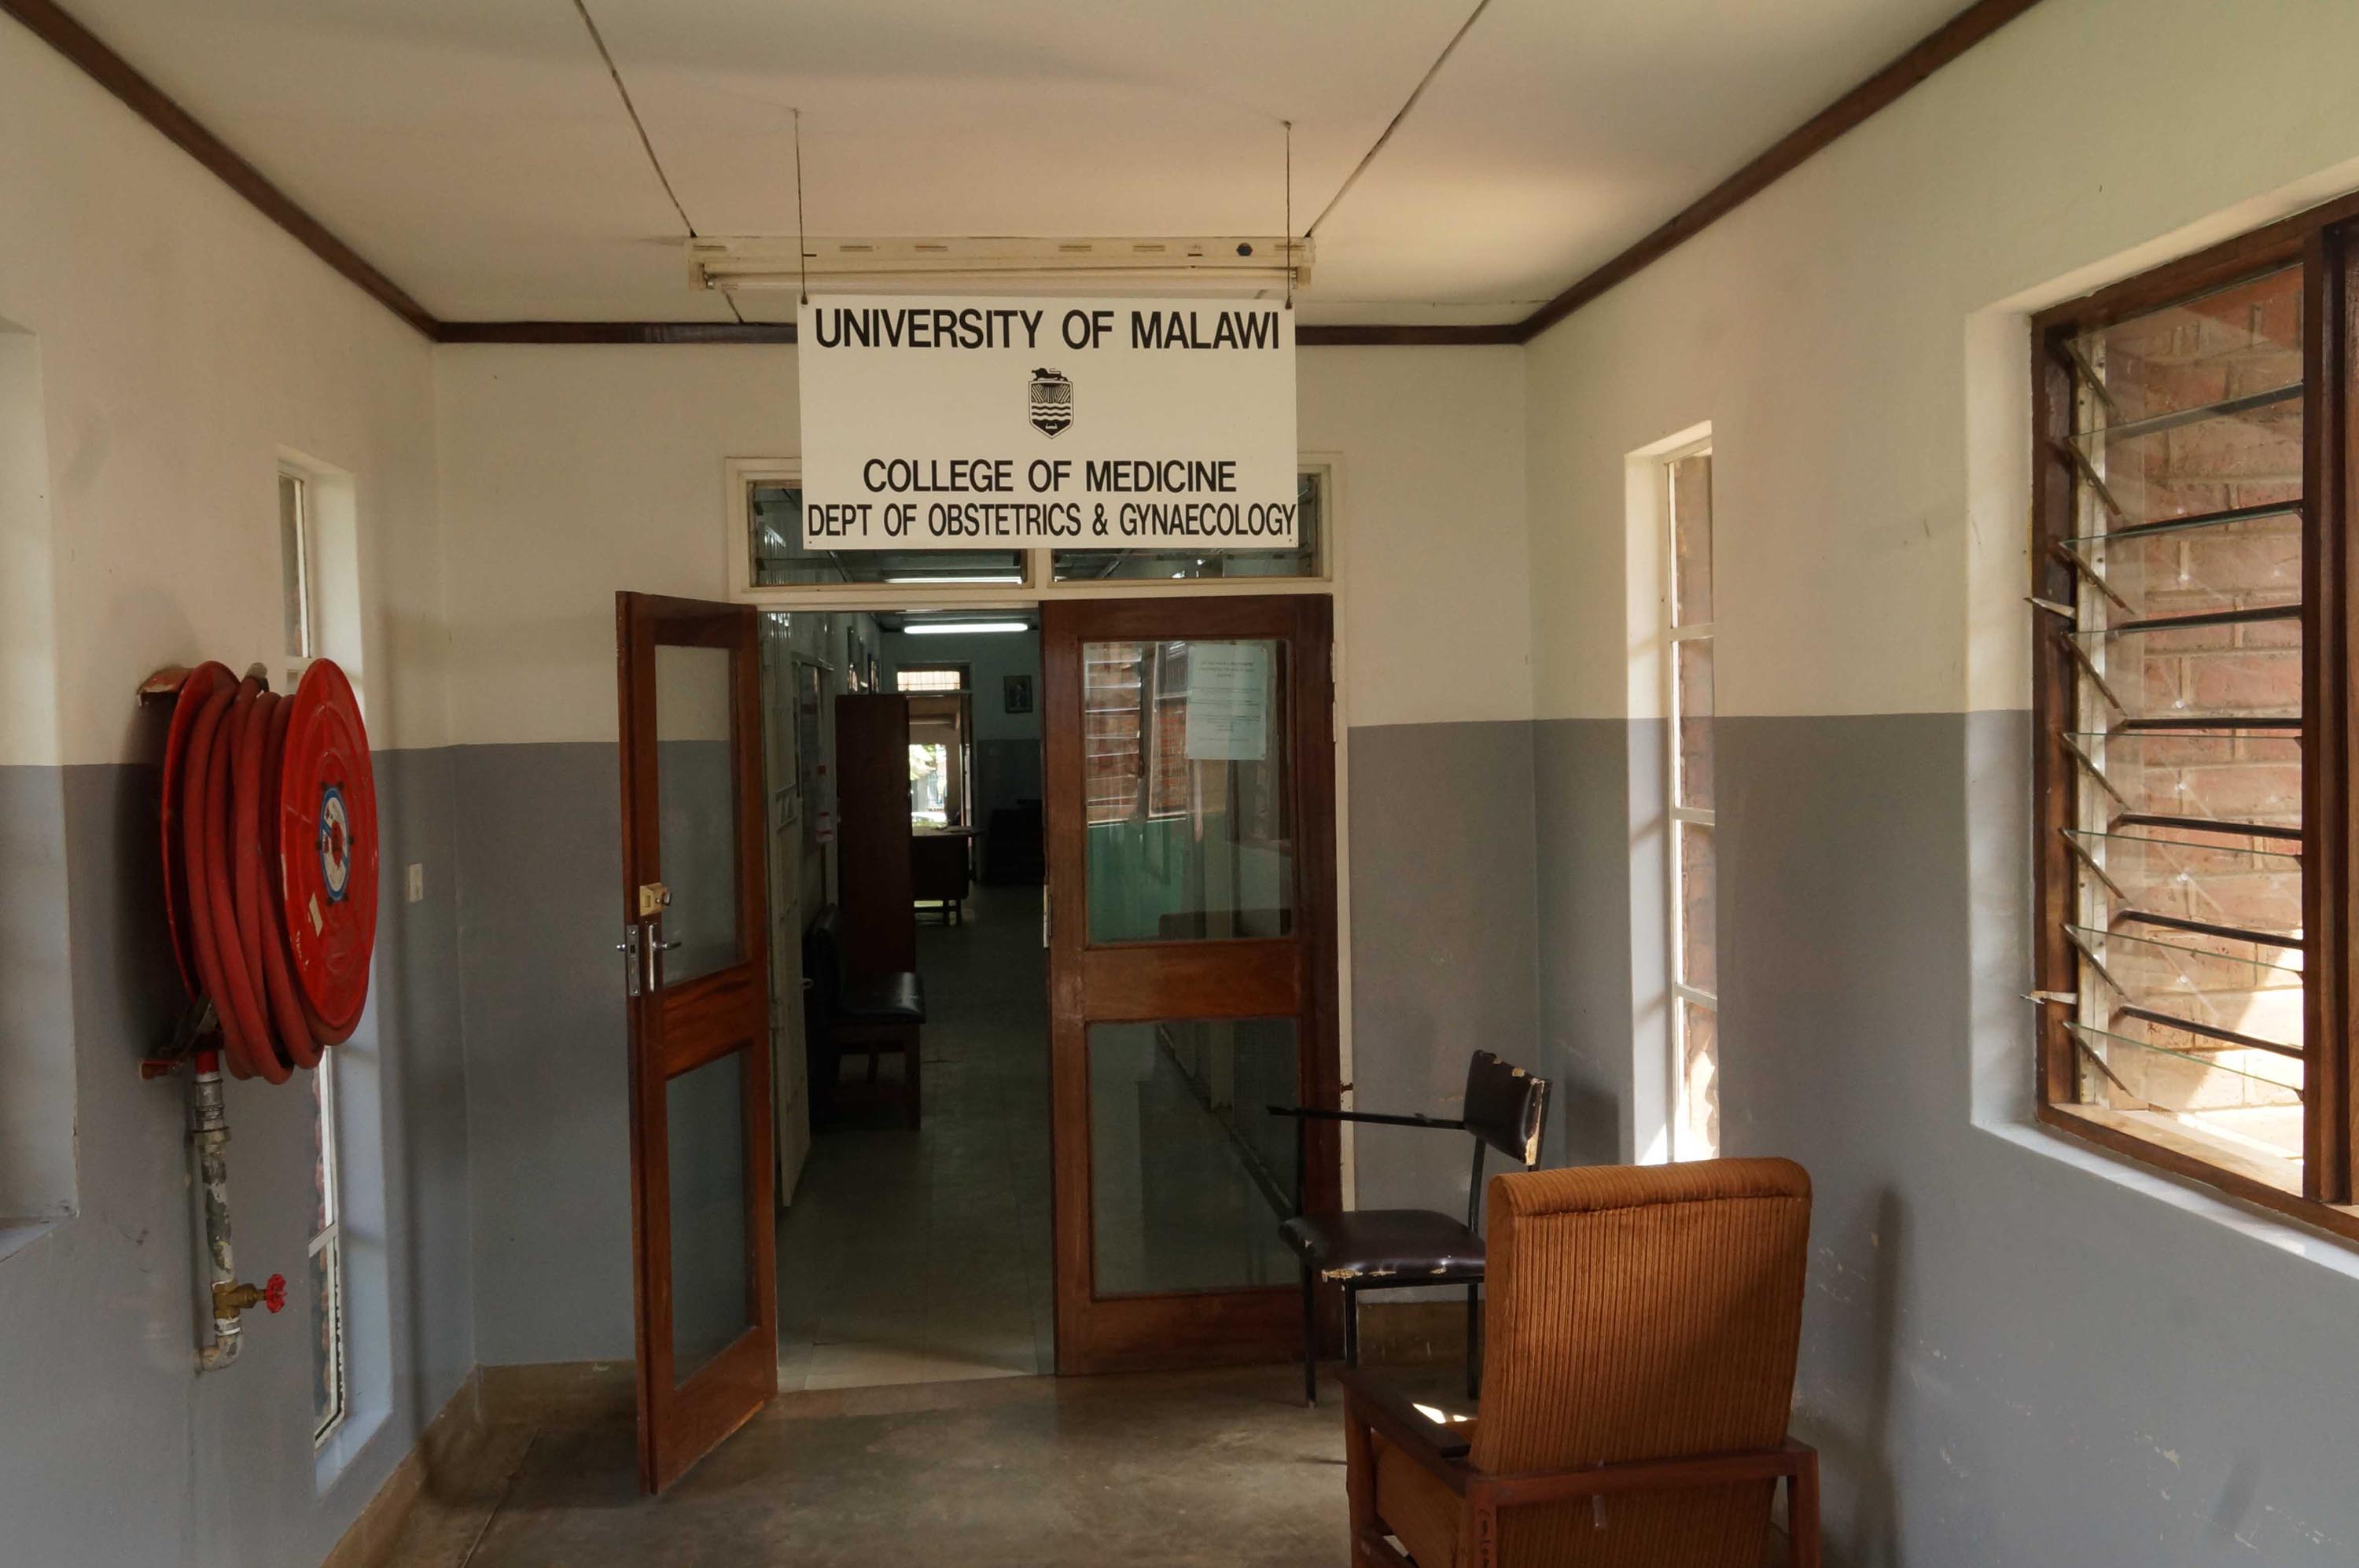 180924143139 03 as equals malawi restrictive abortion large 169 - Women are dying from backstreet abortions. But reforms to Malawi's 157-year-old laws are stuck